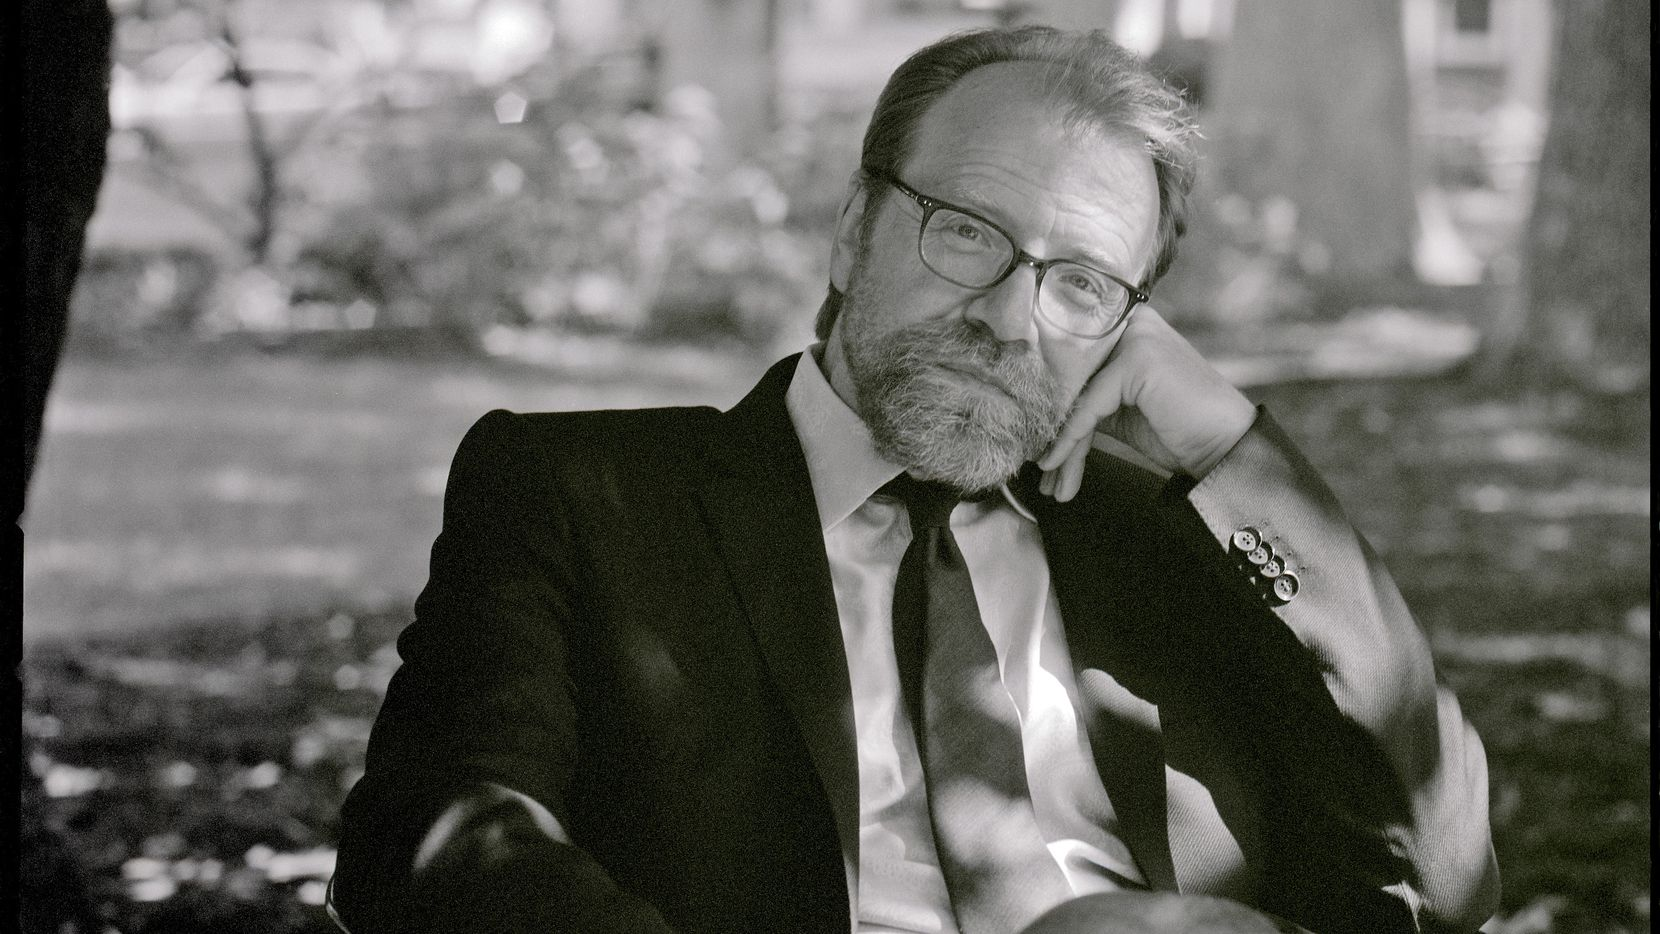 George Saunders, a creative writing professor at Syracuse University for more than two decades, has written an accessible version of his course on the Russian short-story masters of the 19th century: Tolstoy, Chekhov, Turgenev and Gogol.